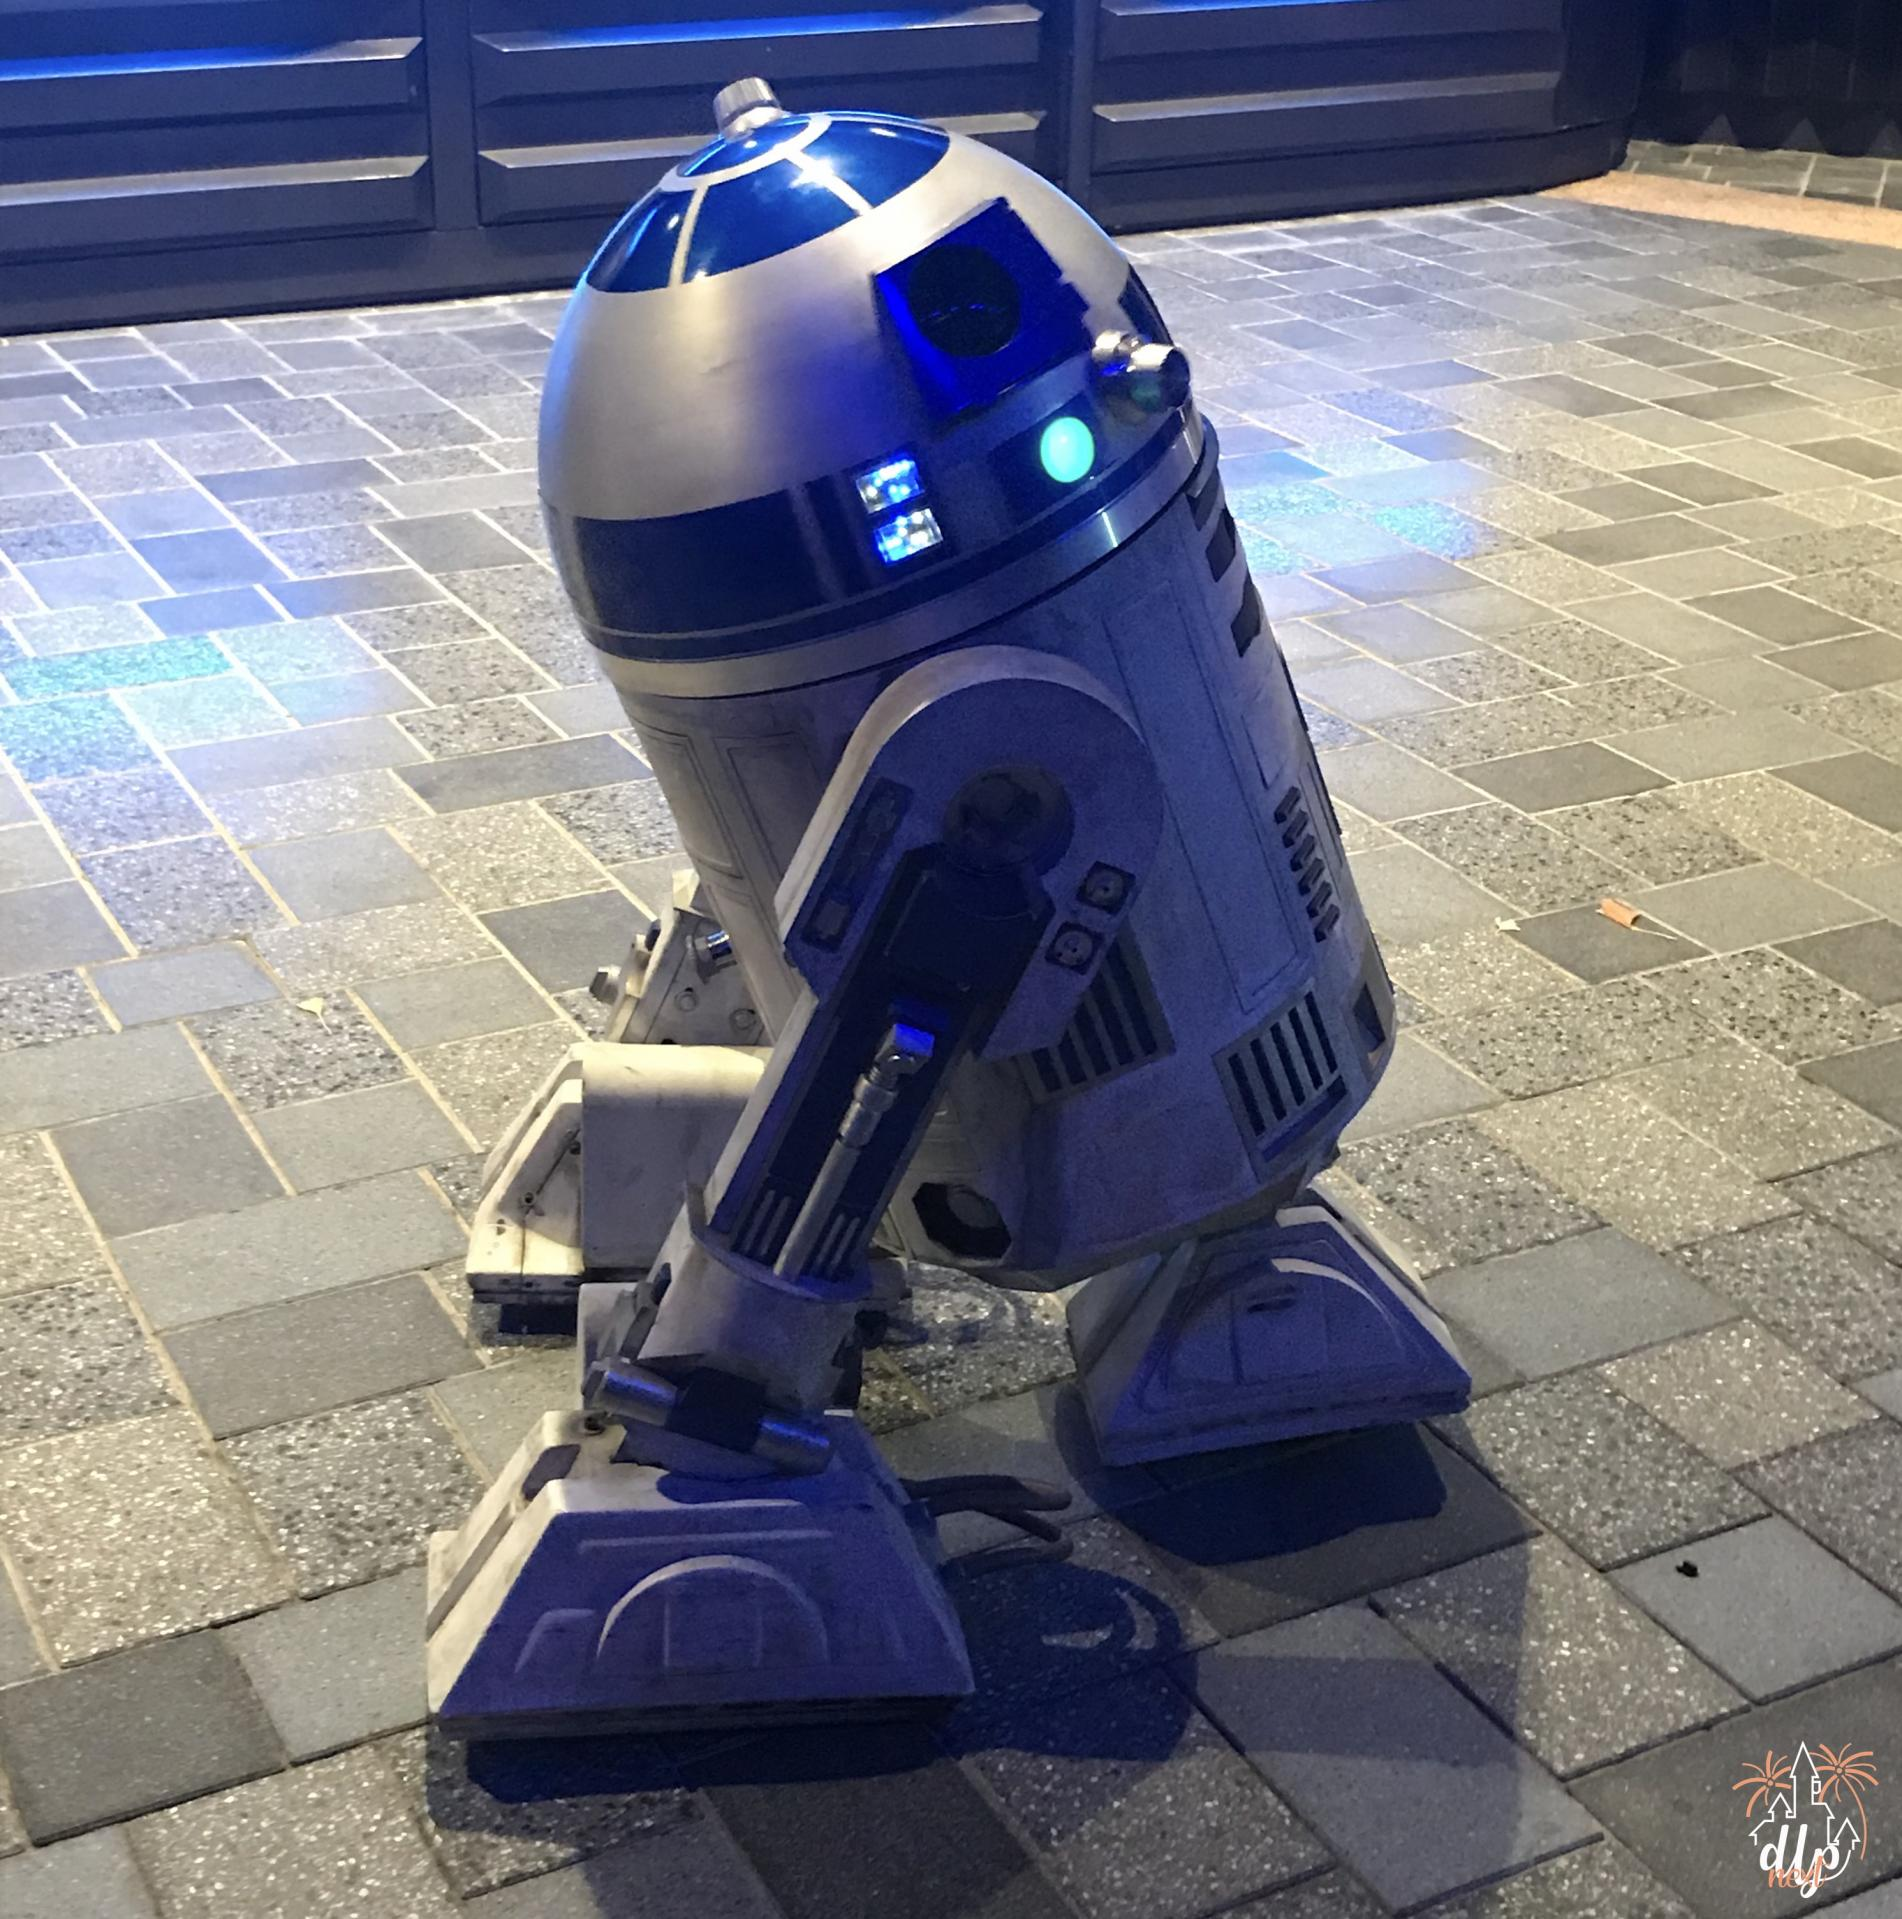 Characters Night Disneyland Paris R2D2